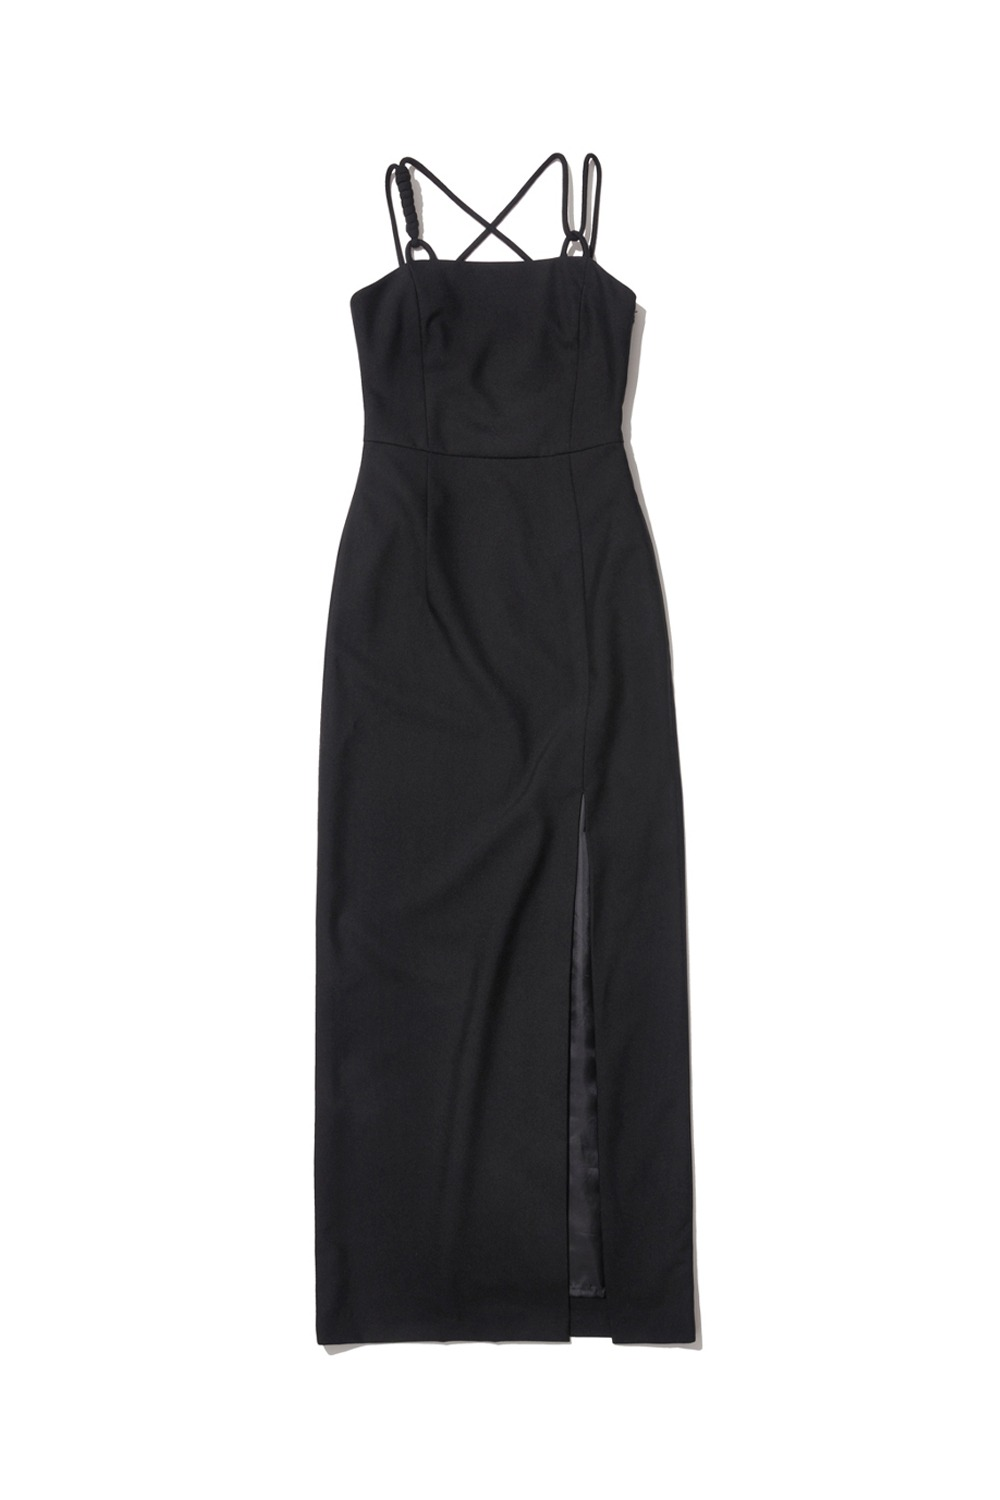 PROJECT MAGO_TAILORED STRAP DRESS_BLACK